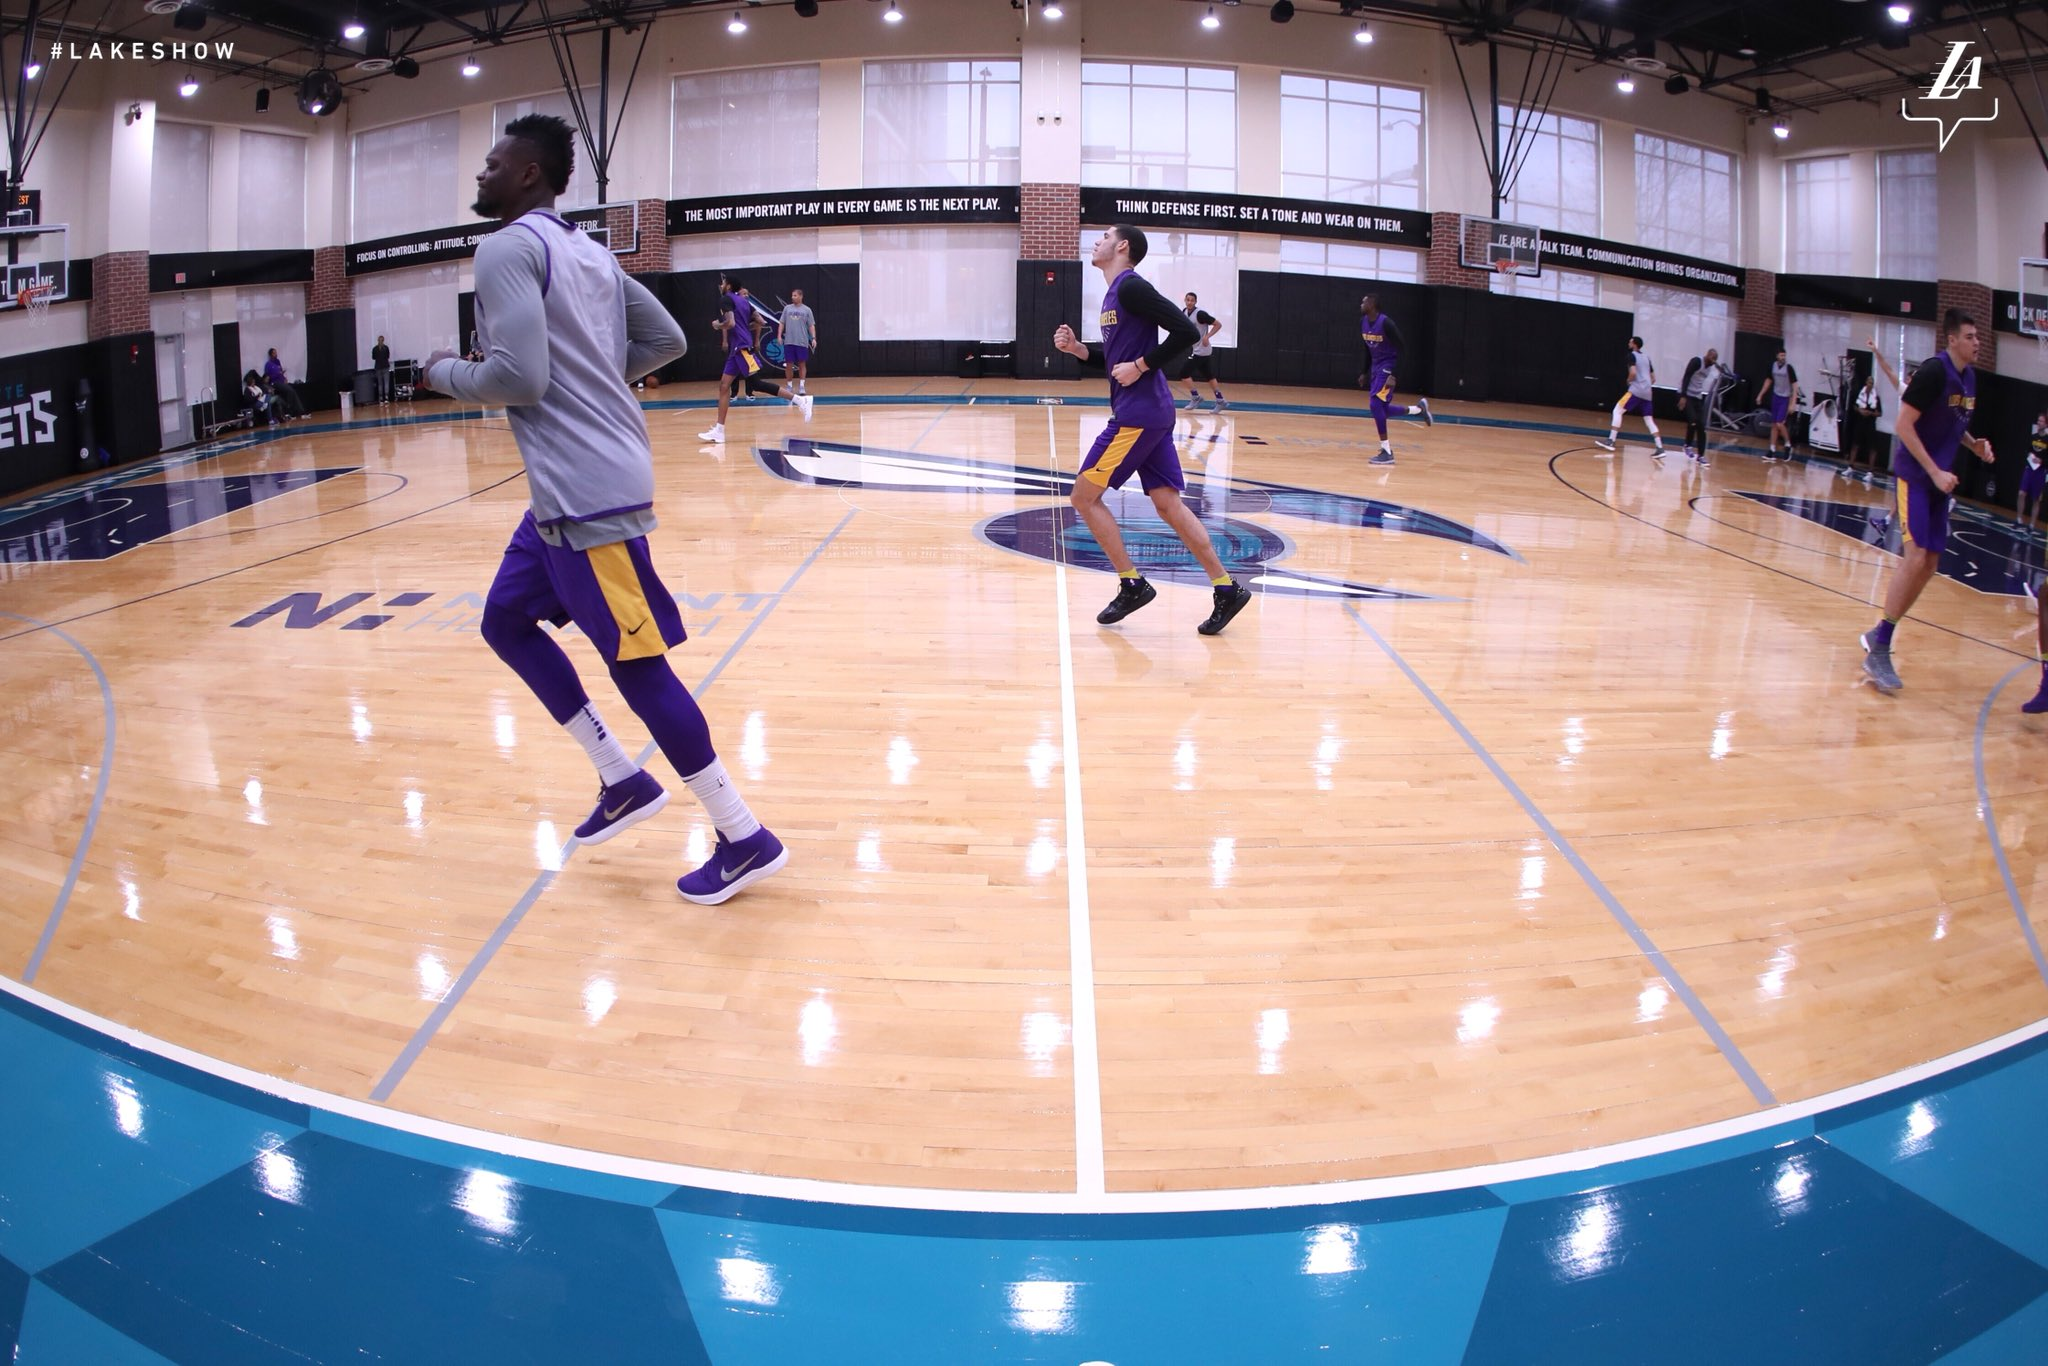 It's a #LakeShow Friday in Charlotte https://t.co/KAfVoWJljh